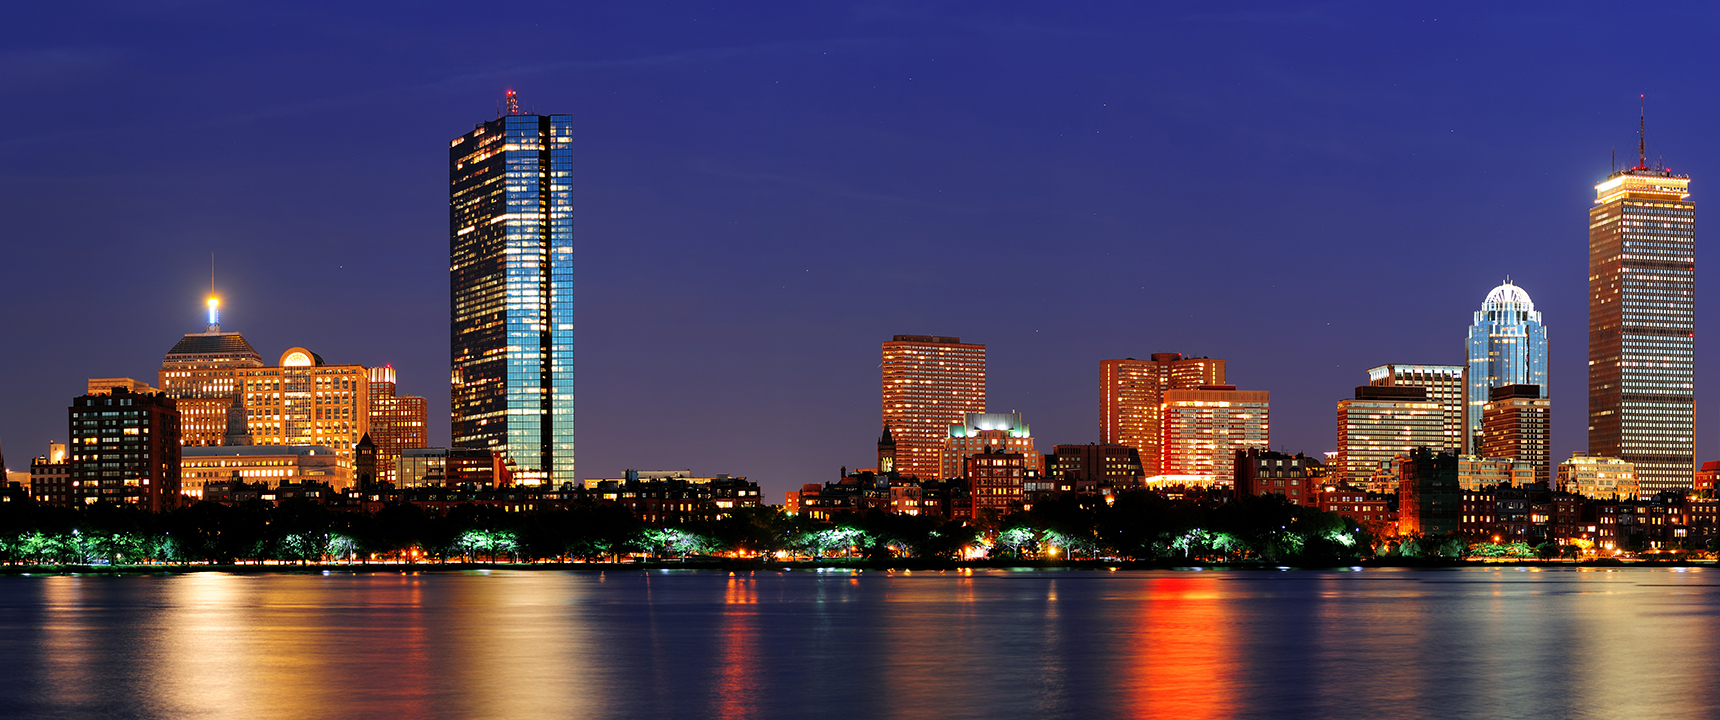 Photo of Boston, Massachusetts where the New England Business Center is located just outside of.